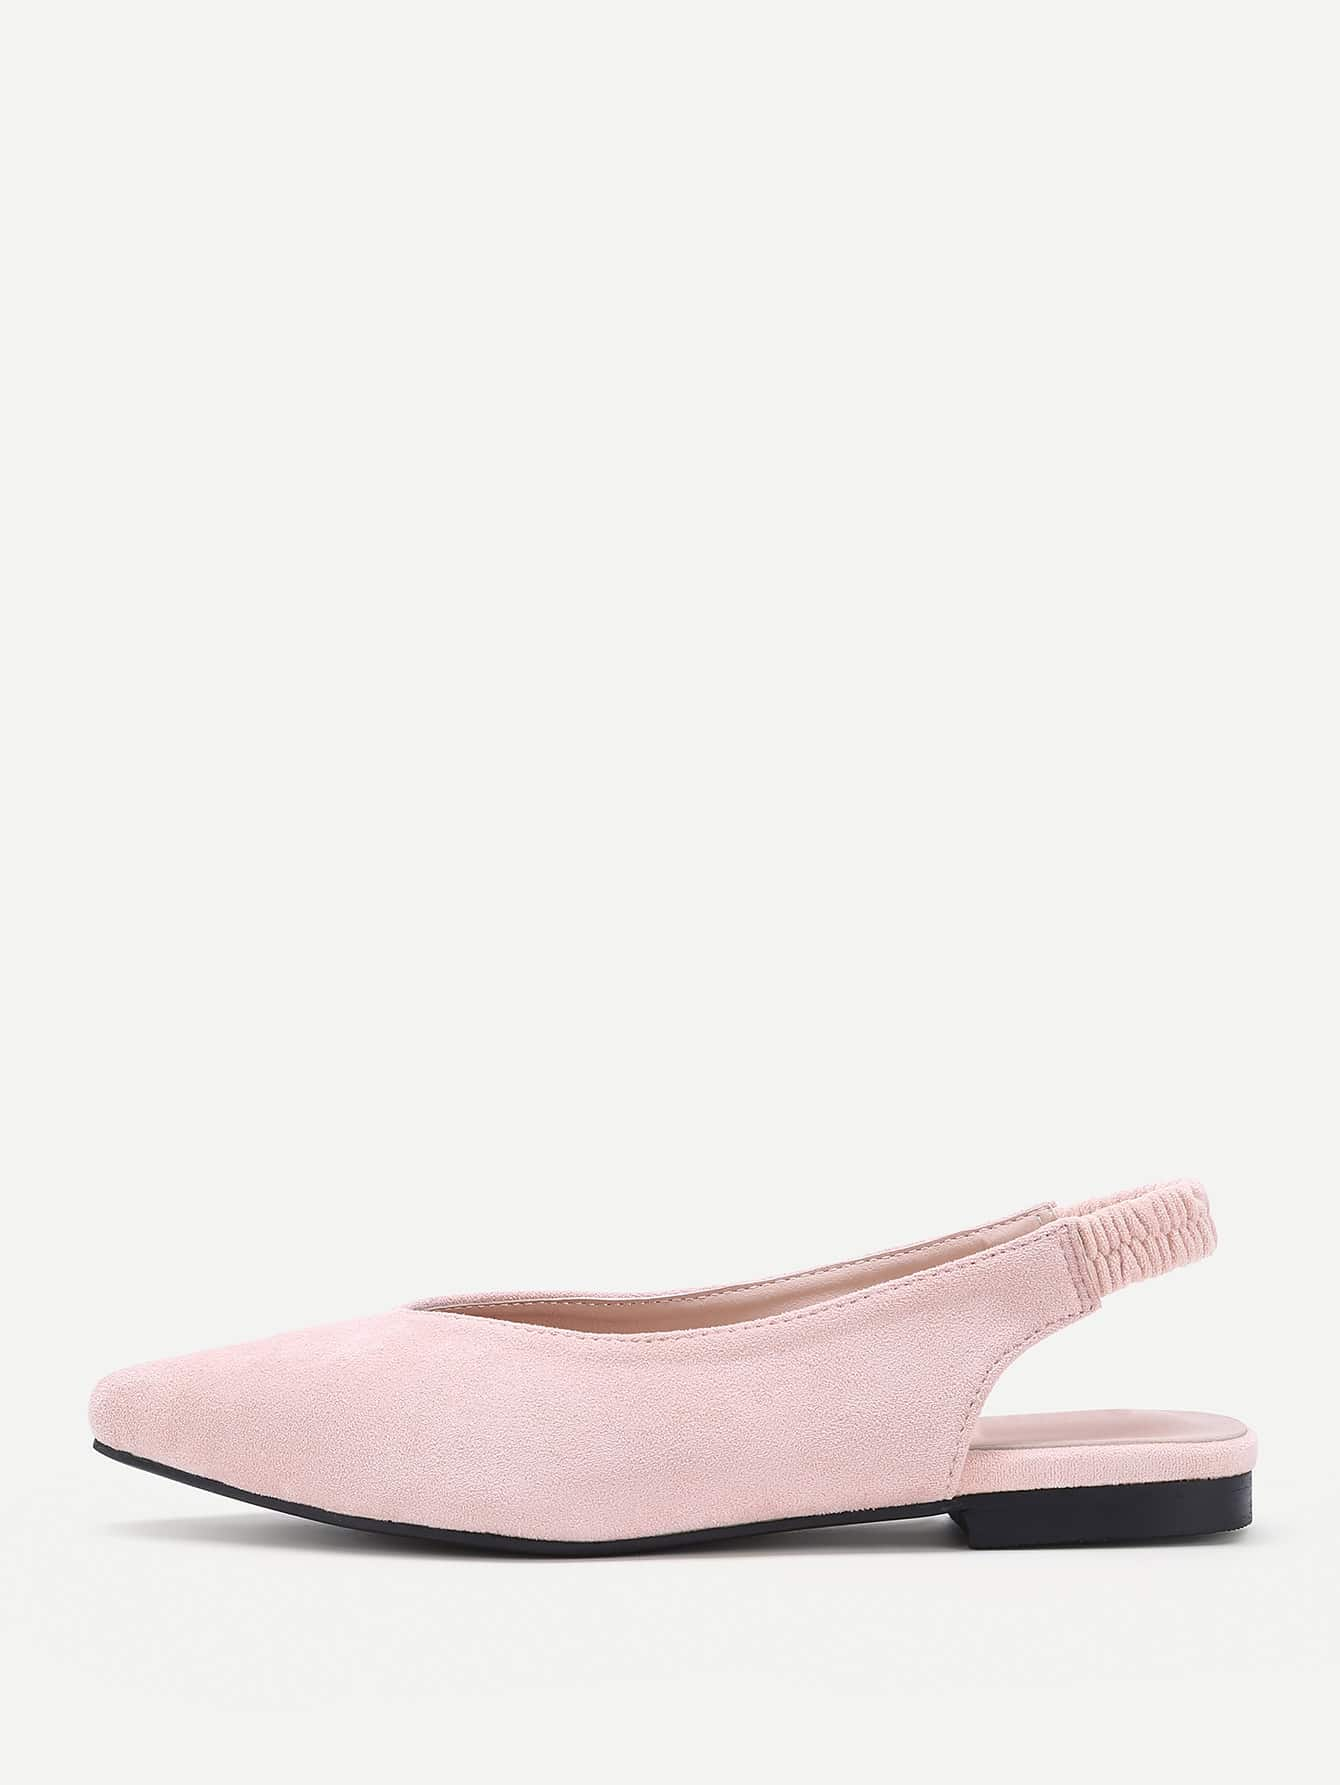 Image of Pointed Toe Slingback Flats